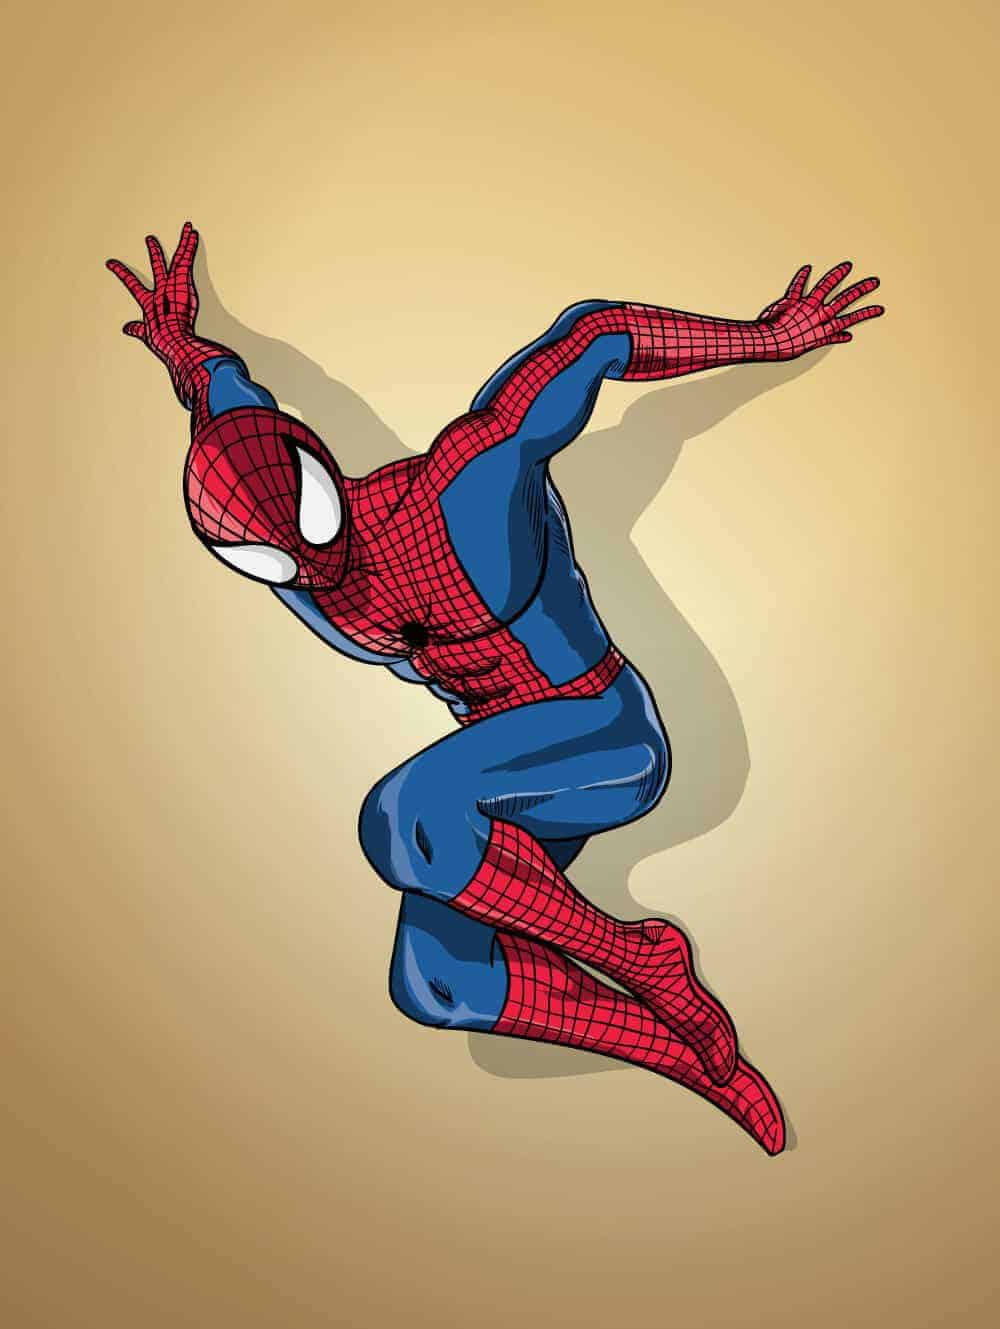 Spiderman-Cartoon-Illustration